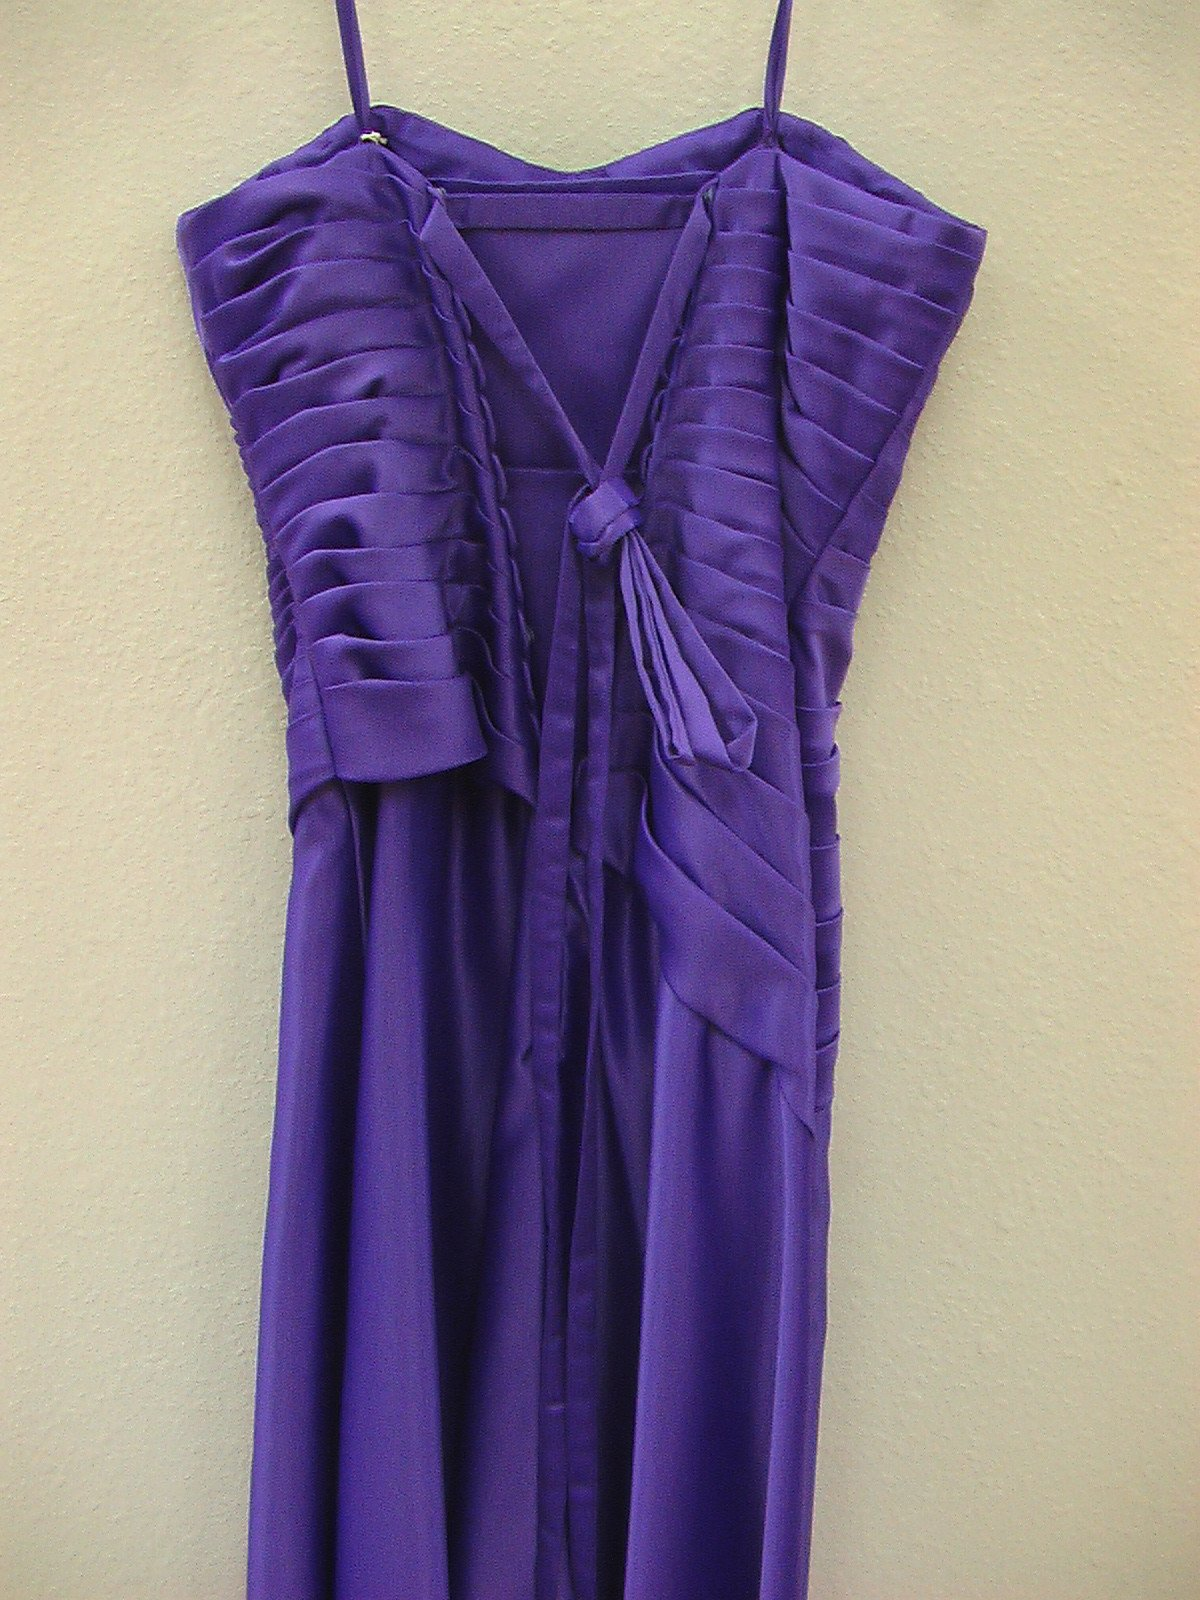 Mori Lee 292 Amethyst size 14 In Stock Bridesmaid Dress - Tom's Bridal